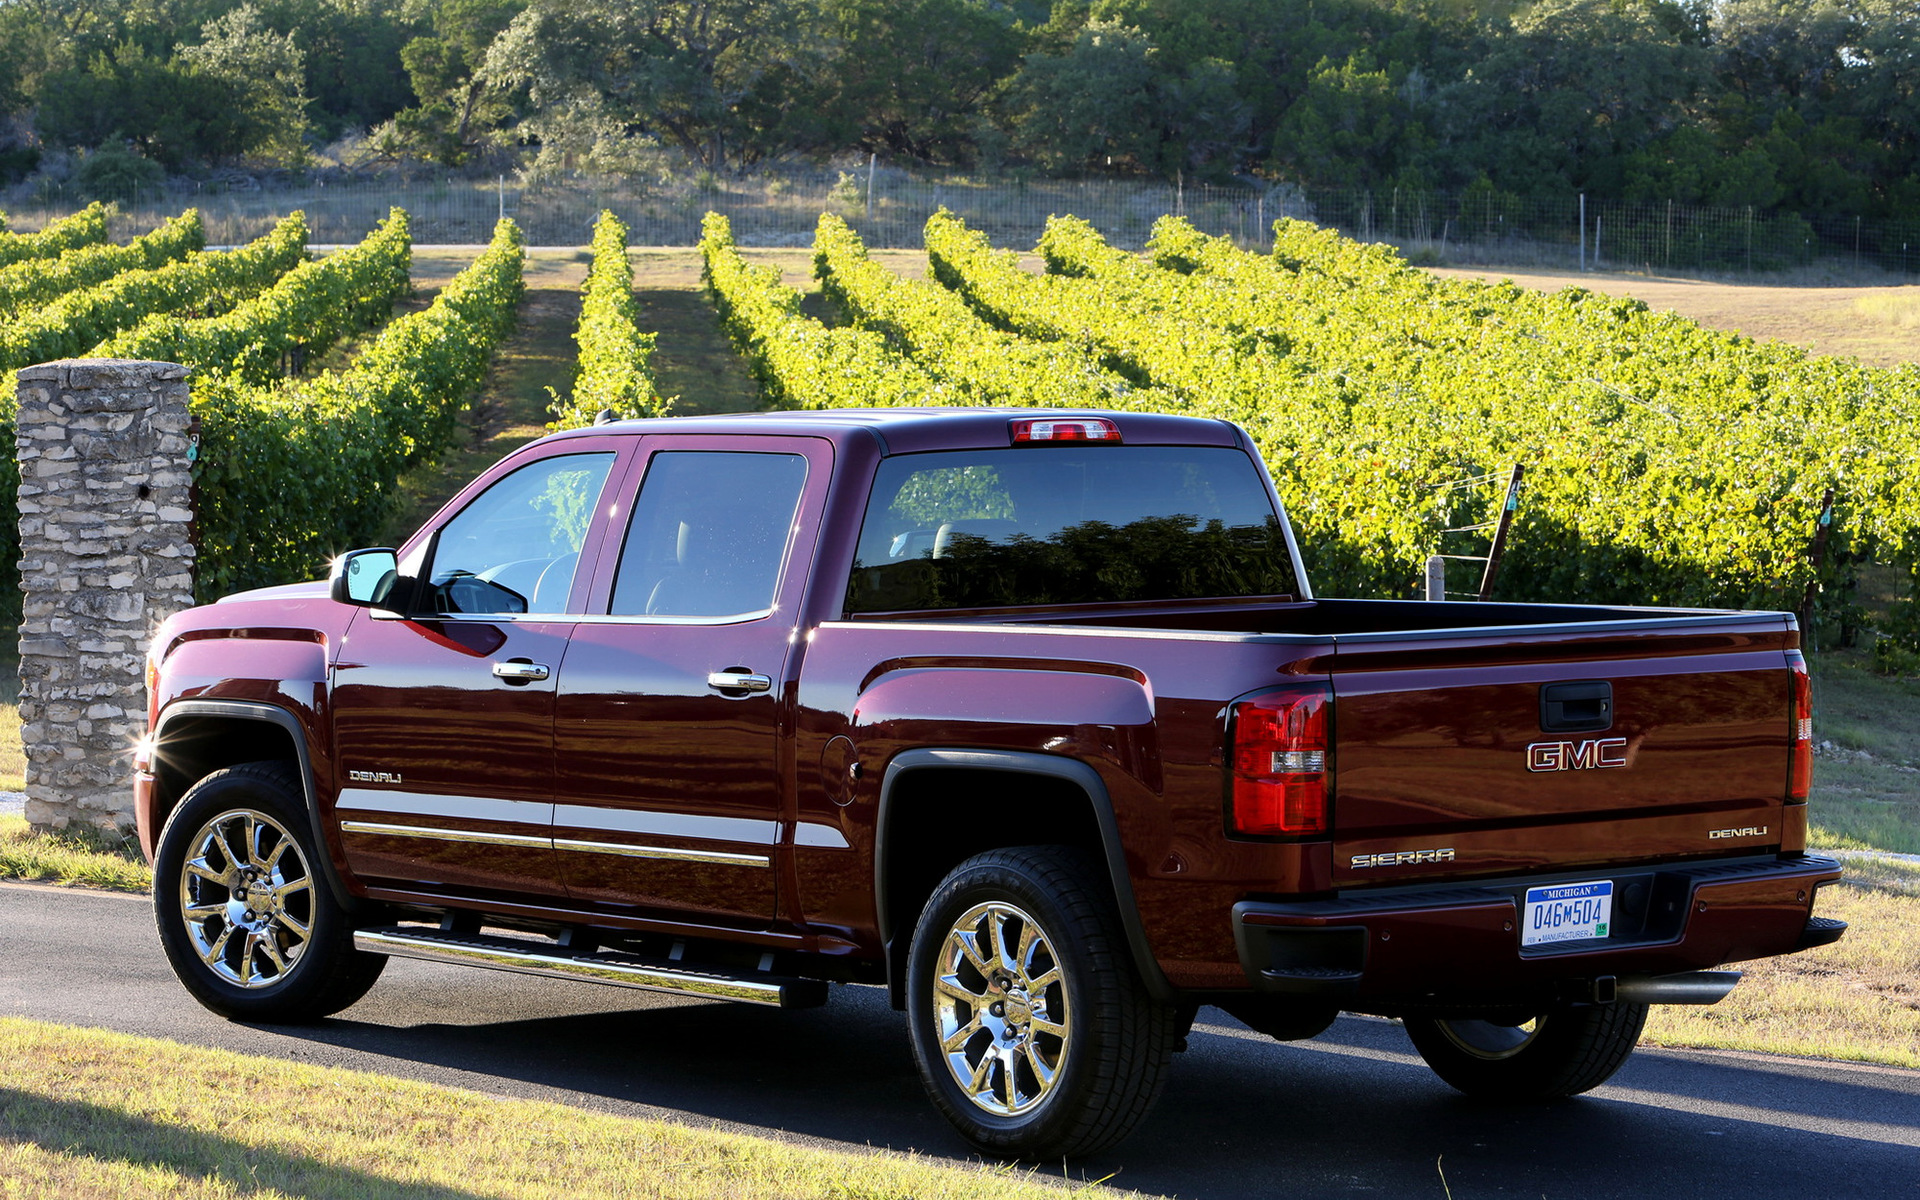 2017 GMC Sierra Denali 1500 Crew Cab photo - 3